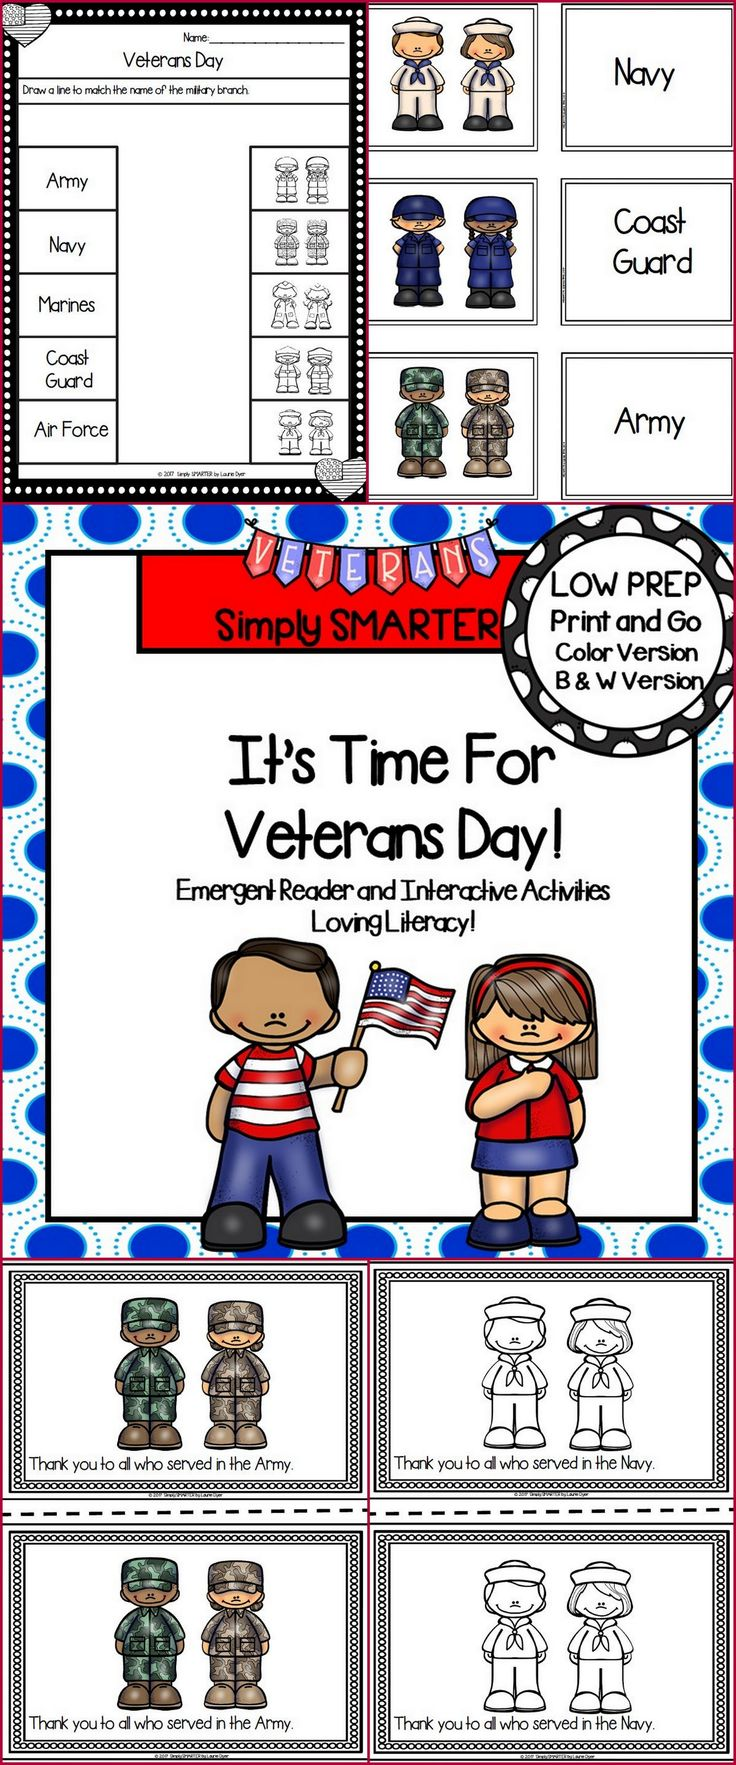 Are you looking for a LOW PREP reading activity for preschool, kindergarten, or first grade?  Then use these activities for guided reading, shared reading, independent reading, social studies, or homework.  Children can choose a colored version or a black and white version of a 9 page reader. The reader contains a patterned sentence on each page and informs children about Veterans Day.  Children will reinforce what they read by completing the response page and by playing card game.